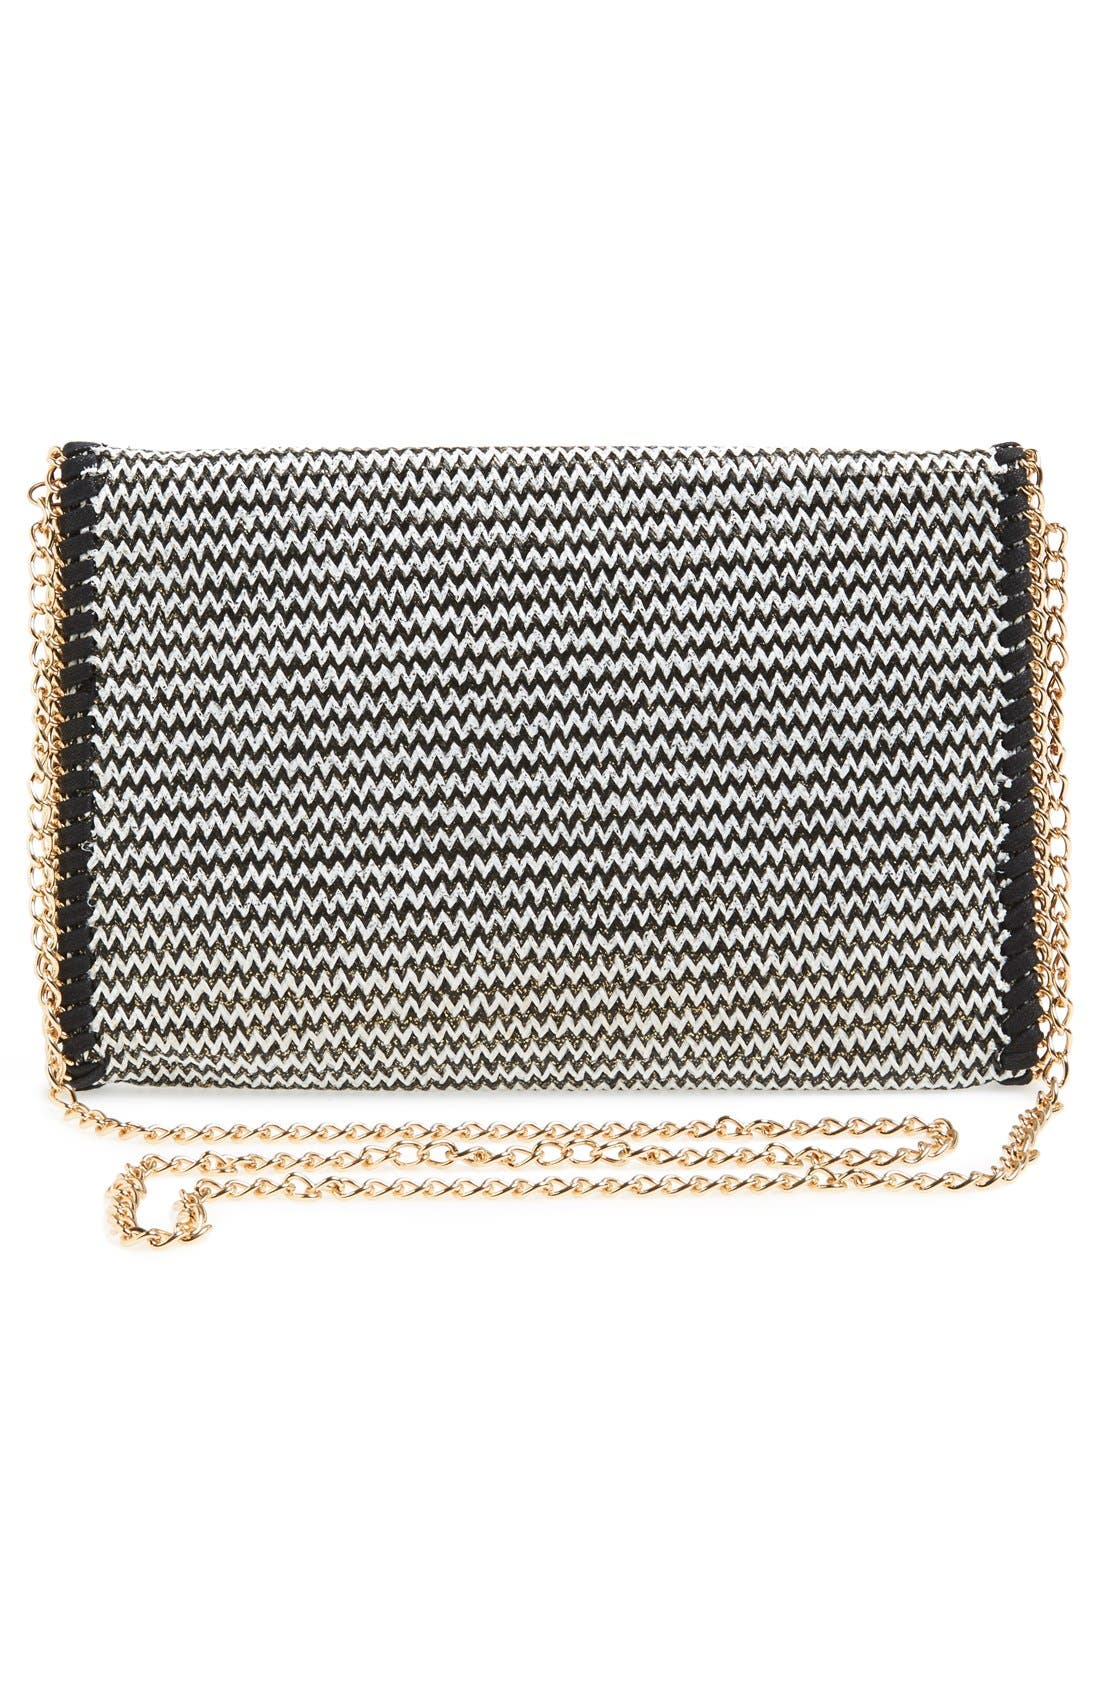 PHASE 3,                             'Zigzag' Chain Clutch,                             Alternate thumbnail 3, color,                             001